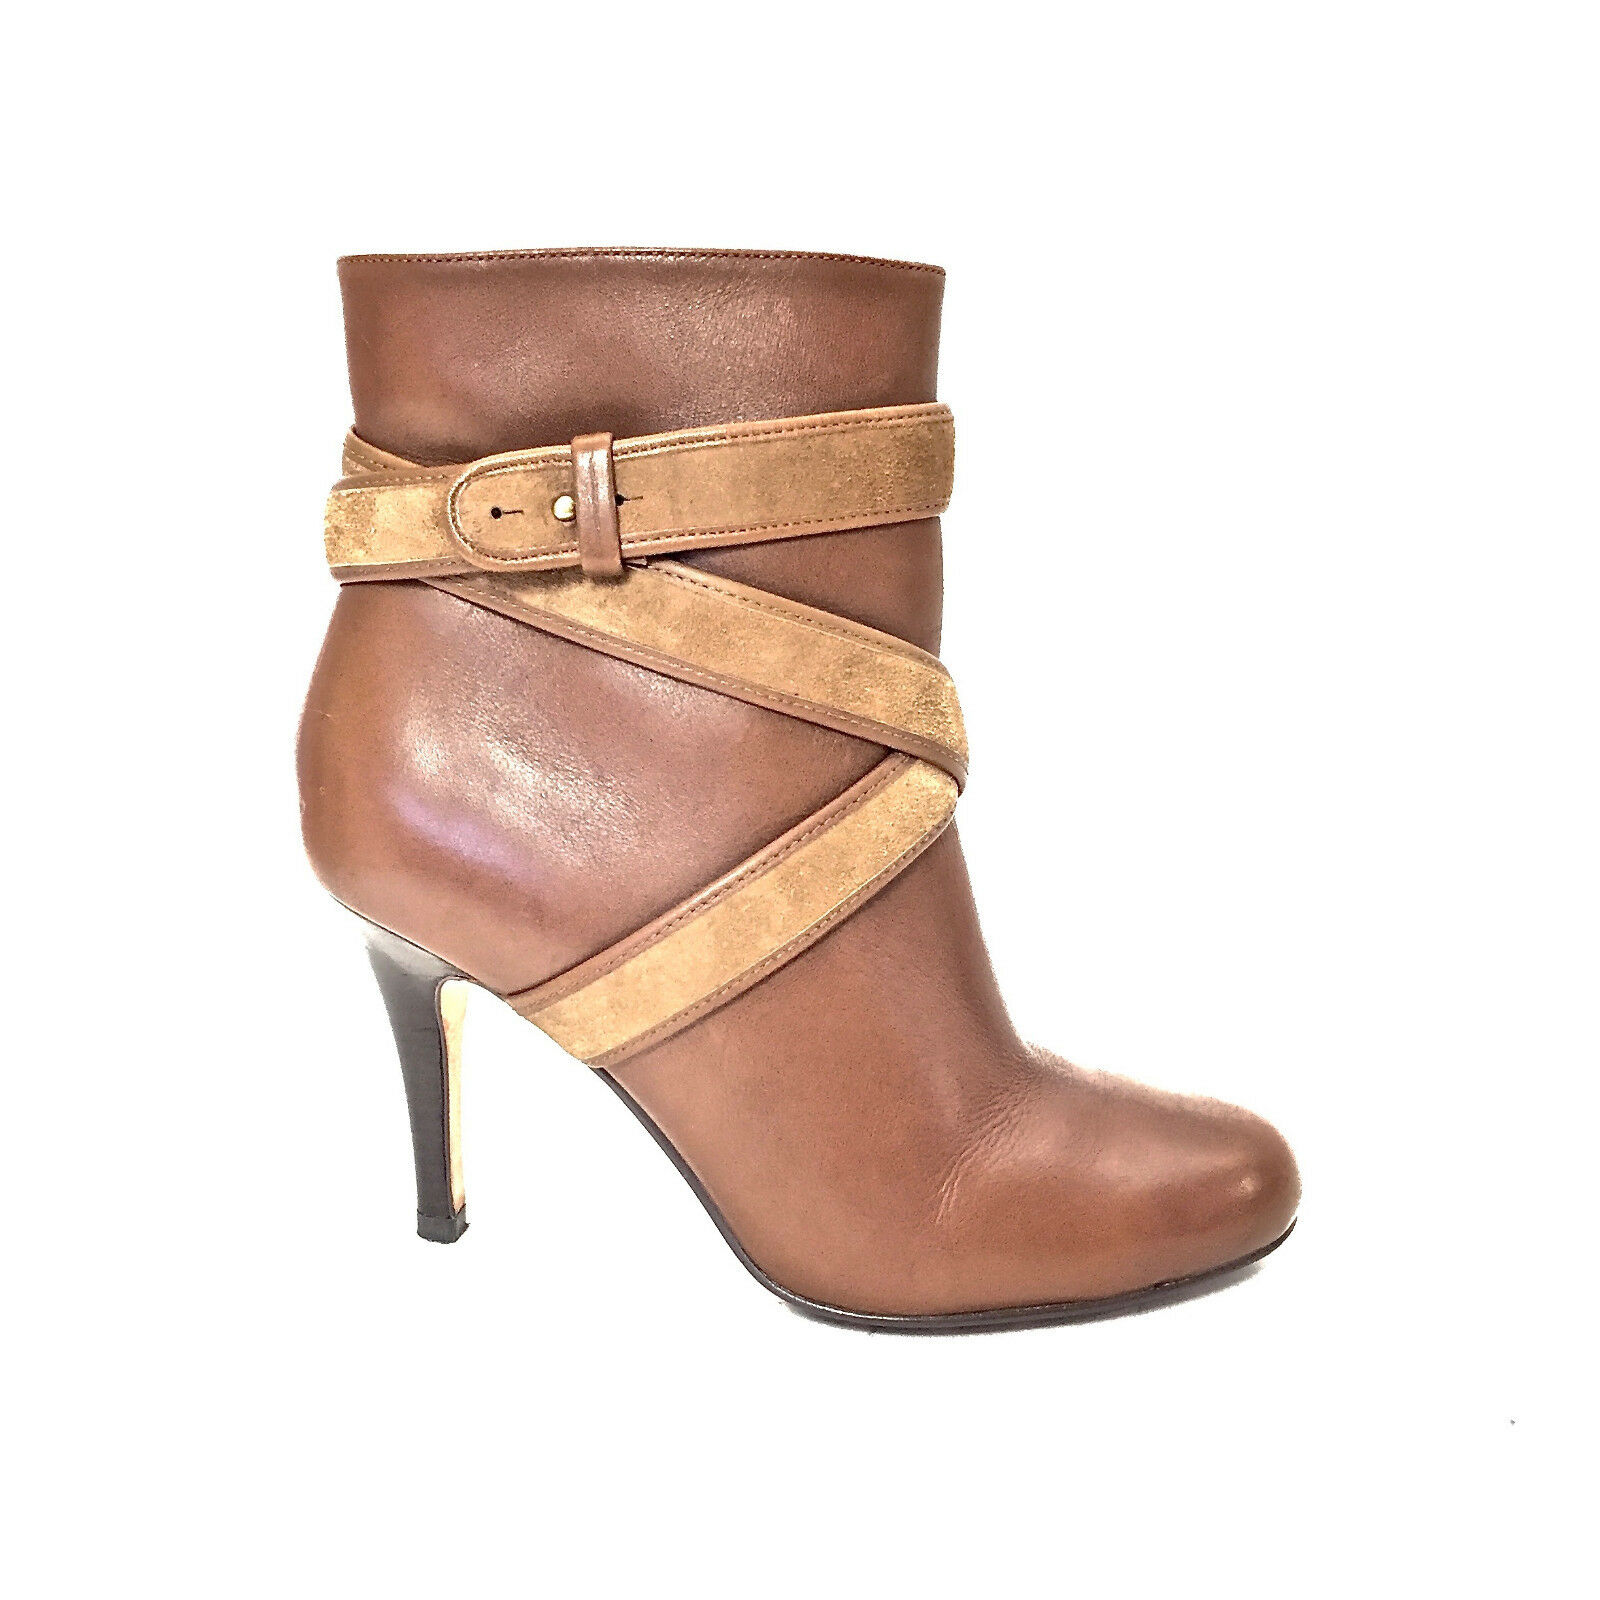 Women's Cole Haan Cognac Leather Leather Leather Zip Up Booties w  Camel Suede Straps Size 6.5 B 3dcedf